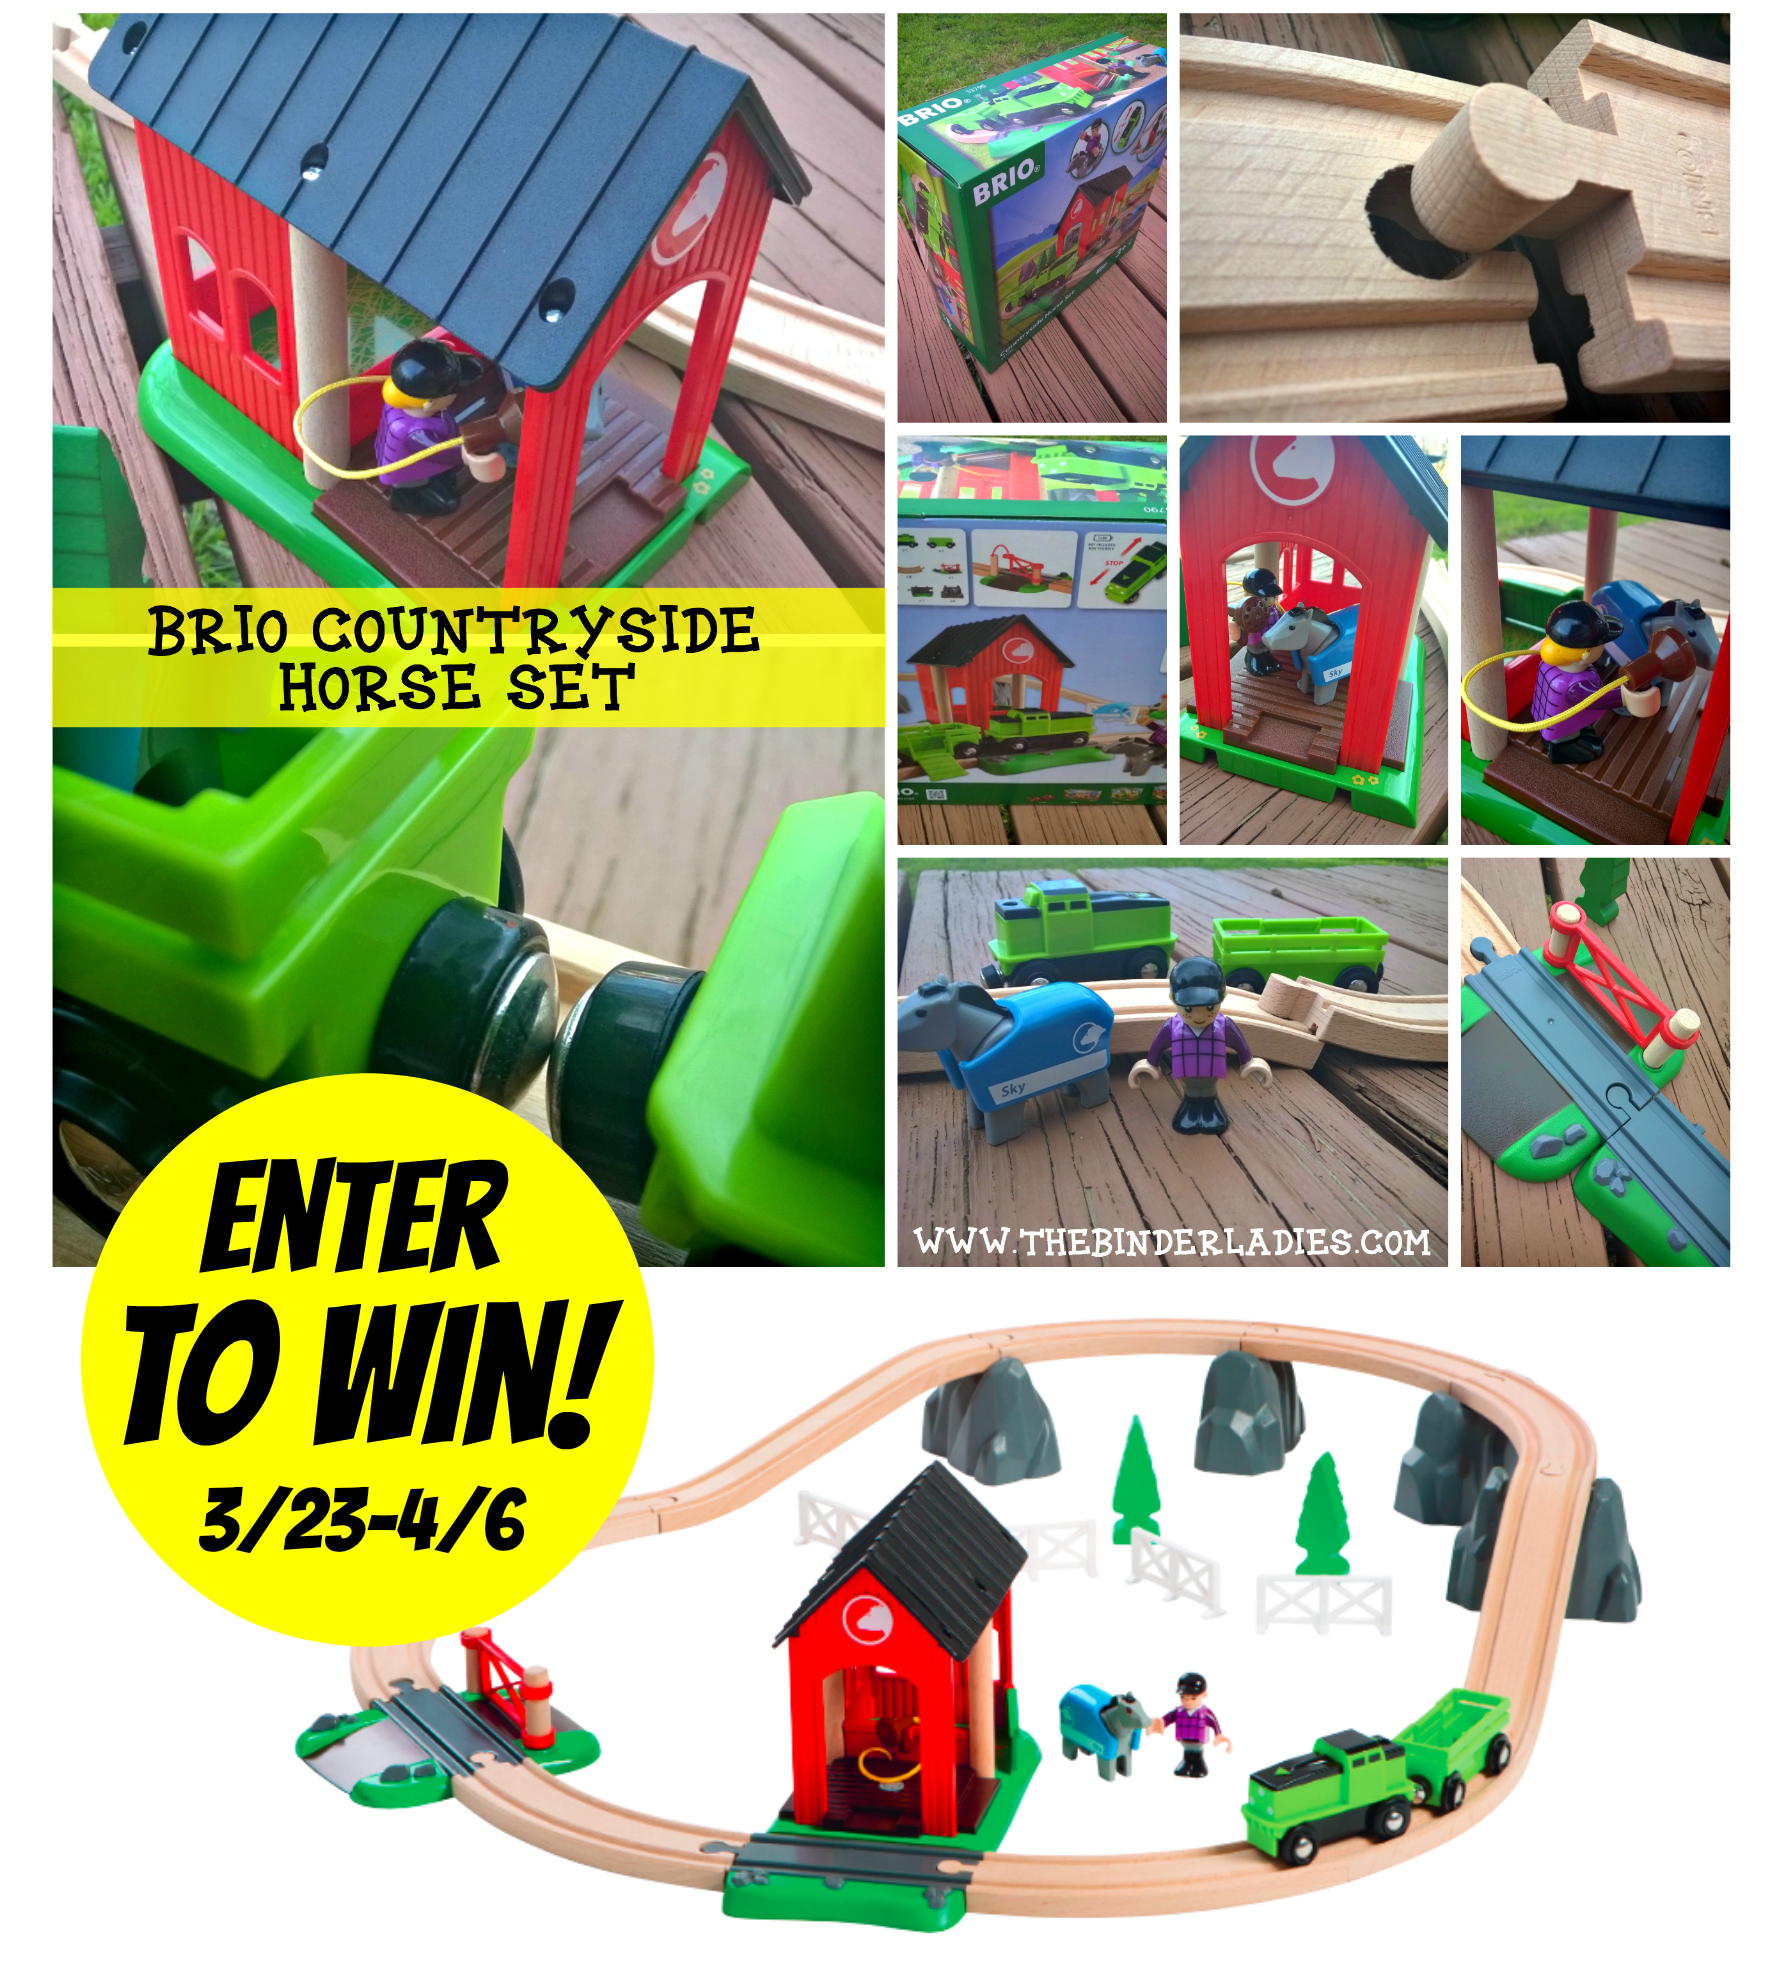 BRIO Countryside Horse Set GIVEAWAY!